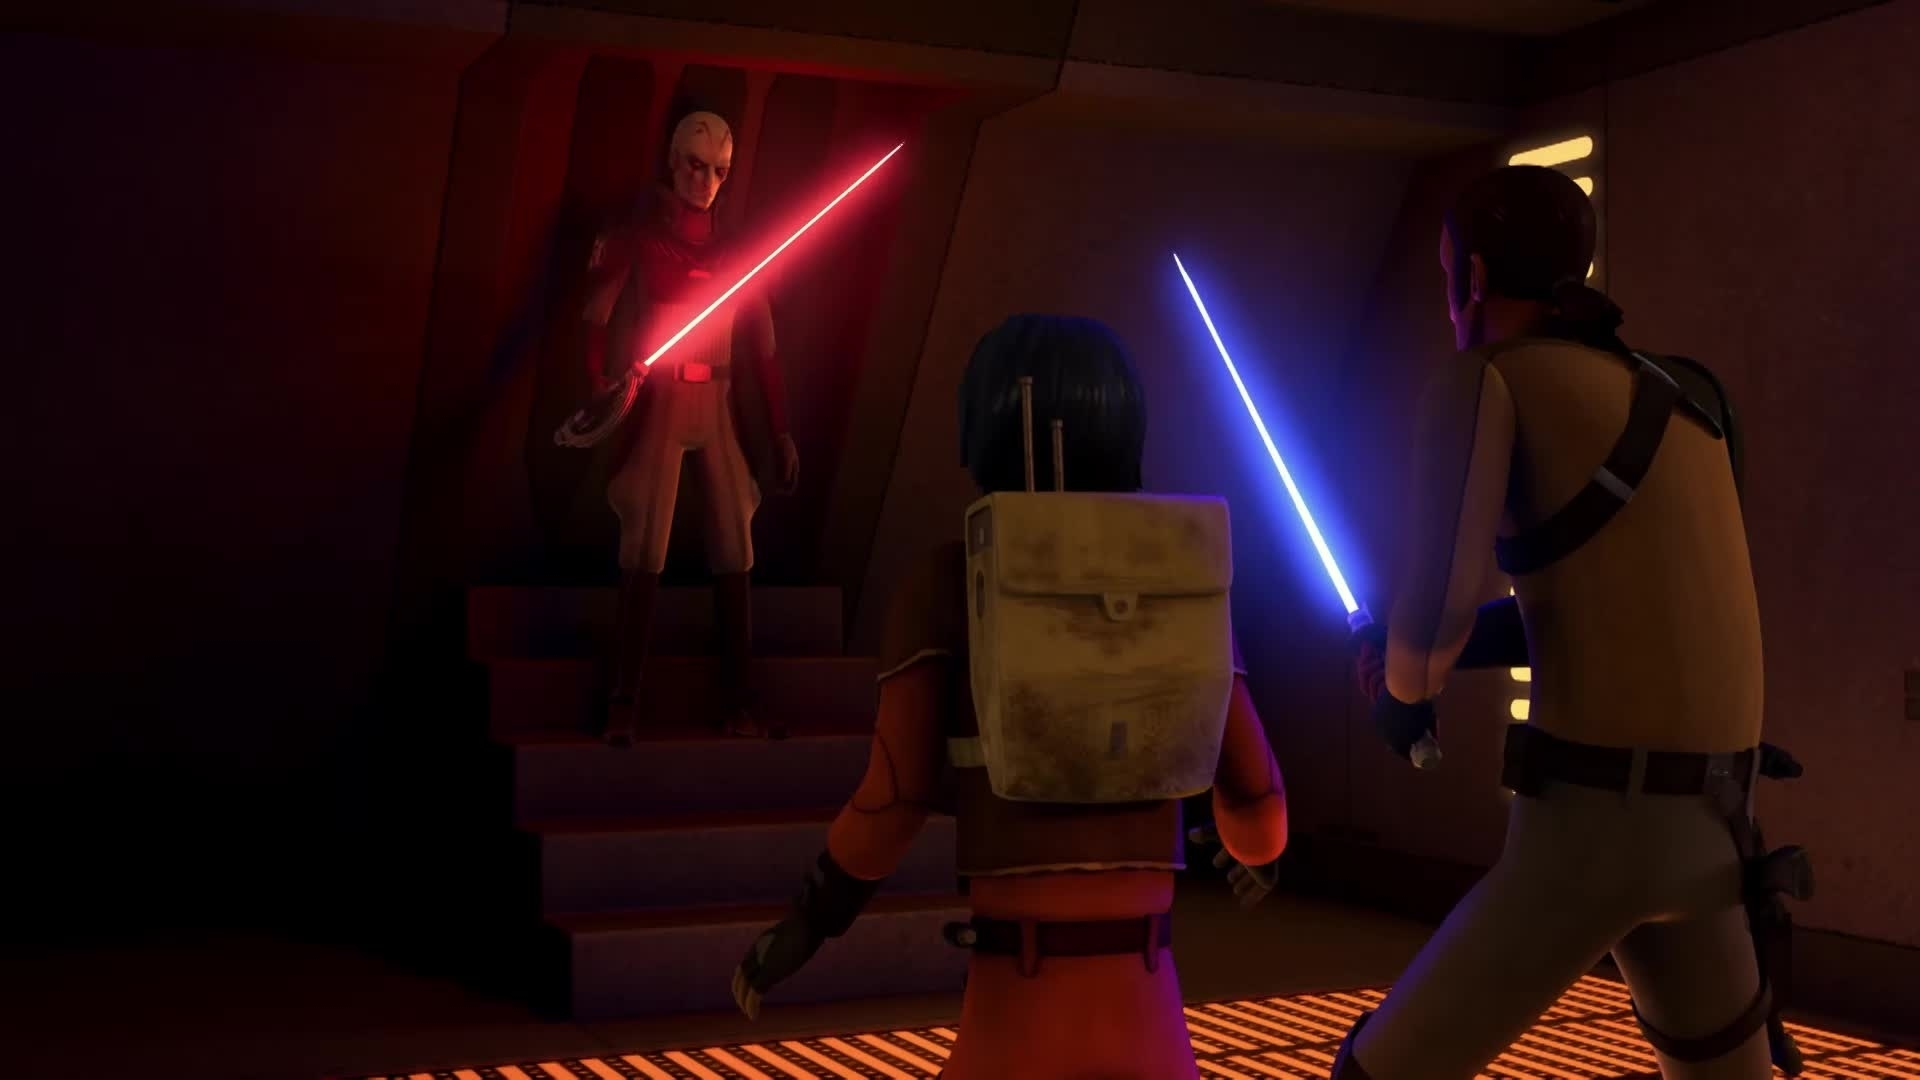 Star Wars Rebels - Een Jedi meester